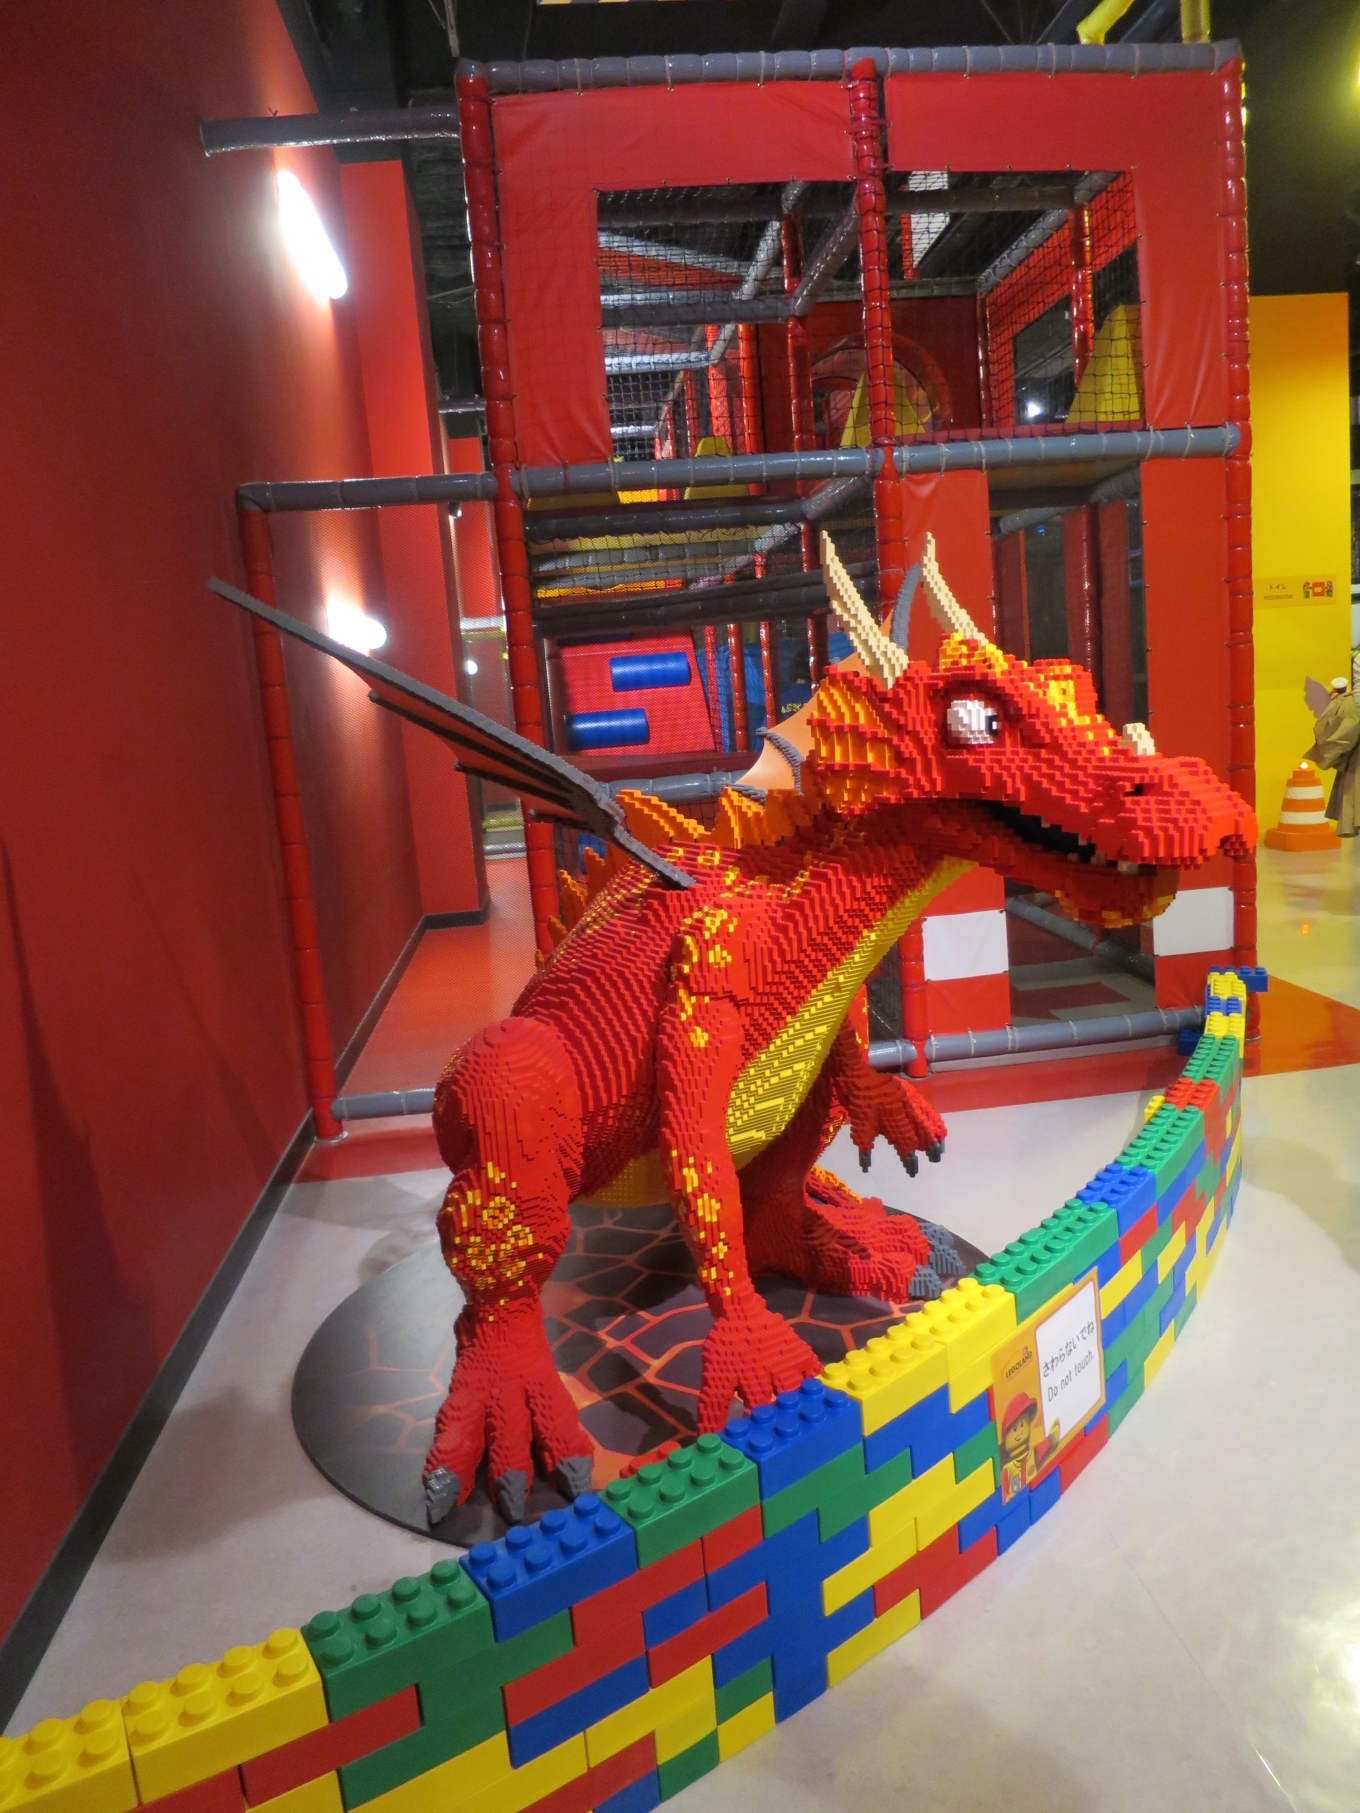 Charizilla gives his big green cousin a helping hand at Tokyo Legoland.